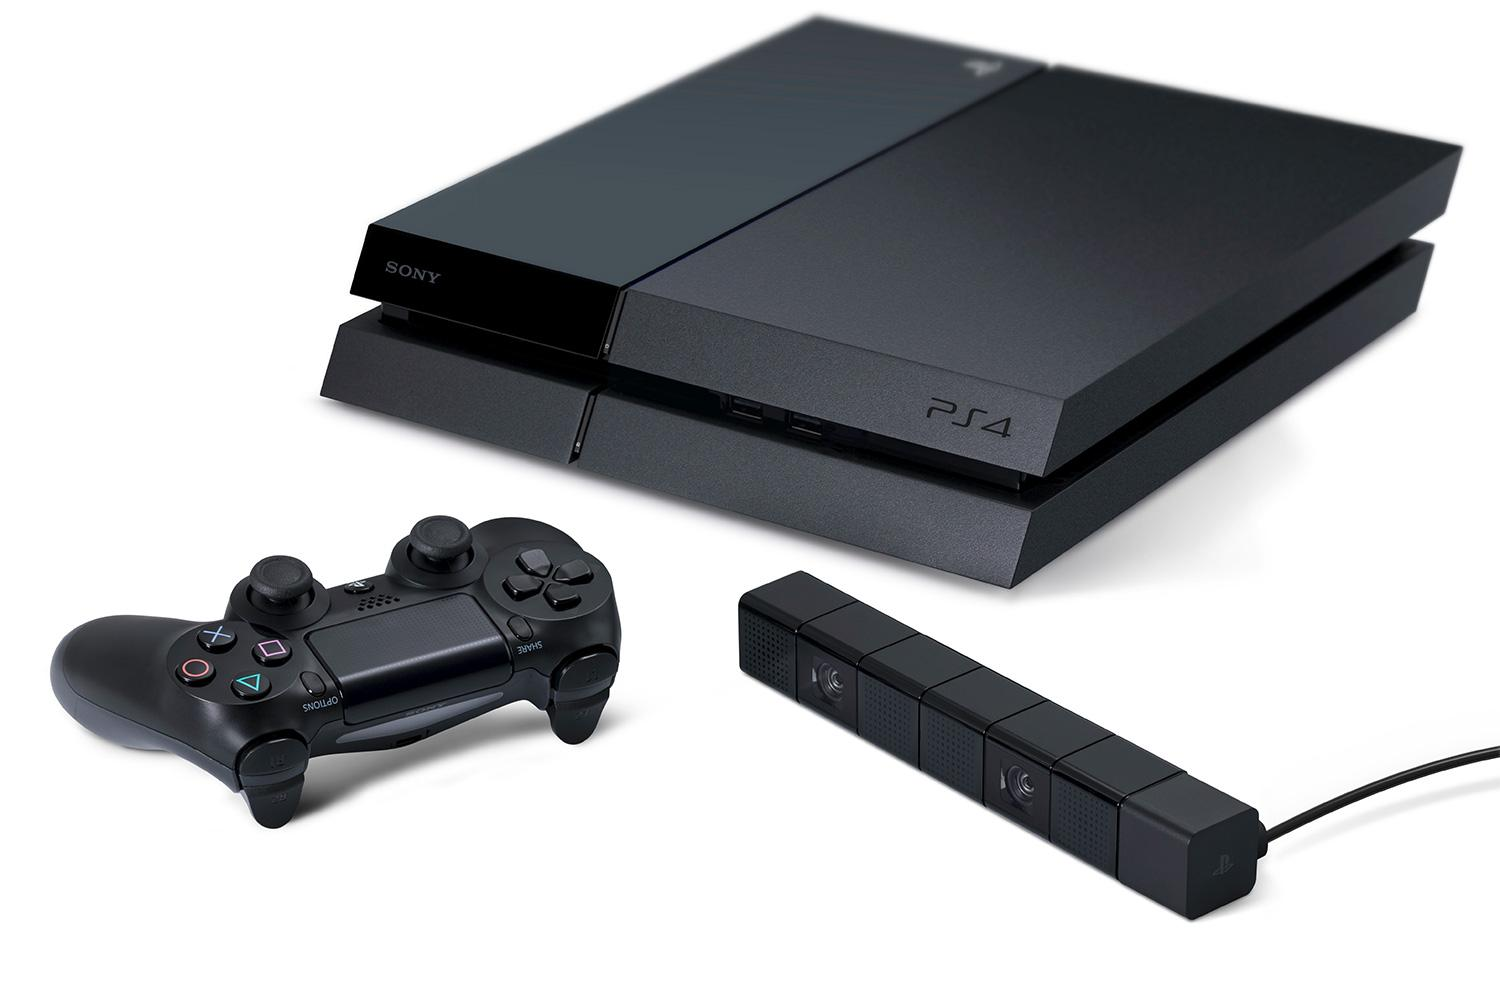 Sony reveals PS4 release date, price drops, new games, and trailers at Gamescom 2013